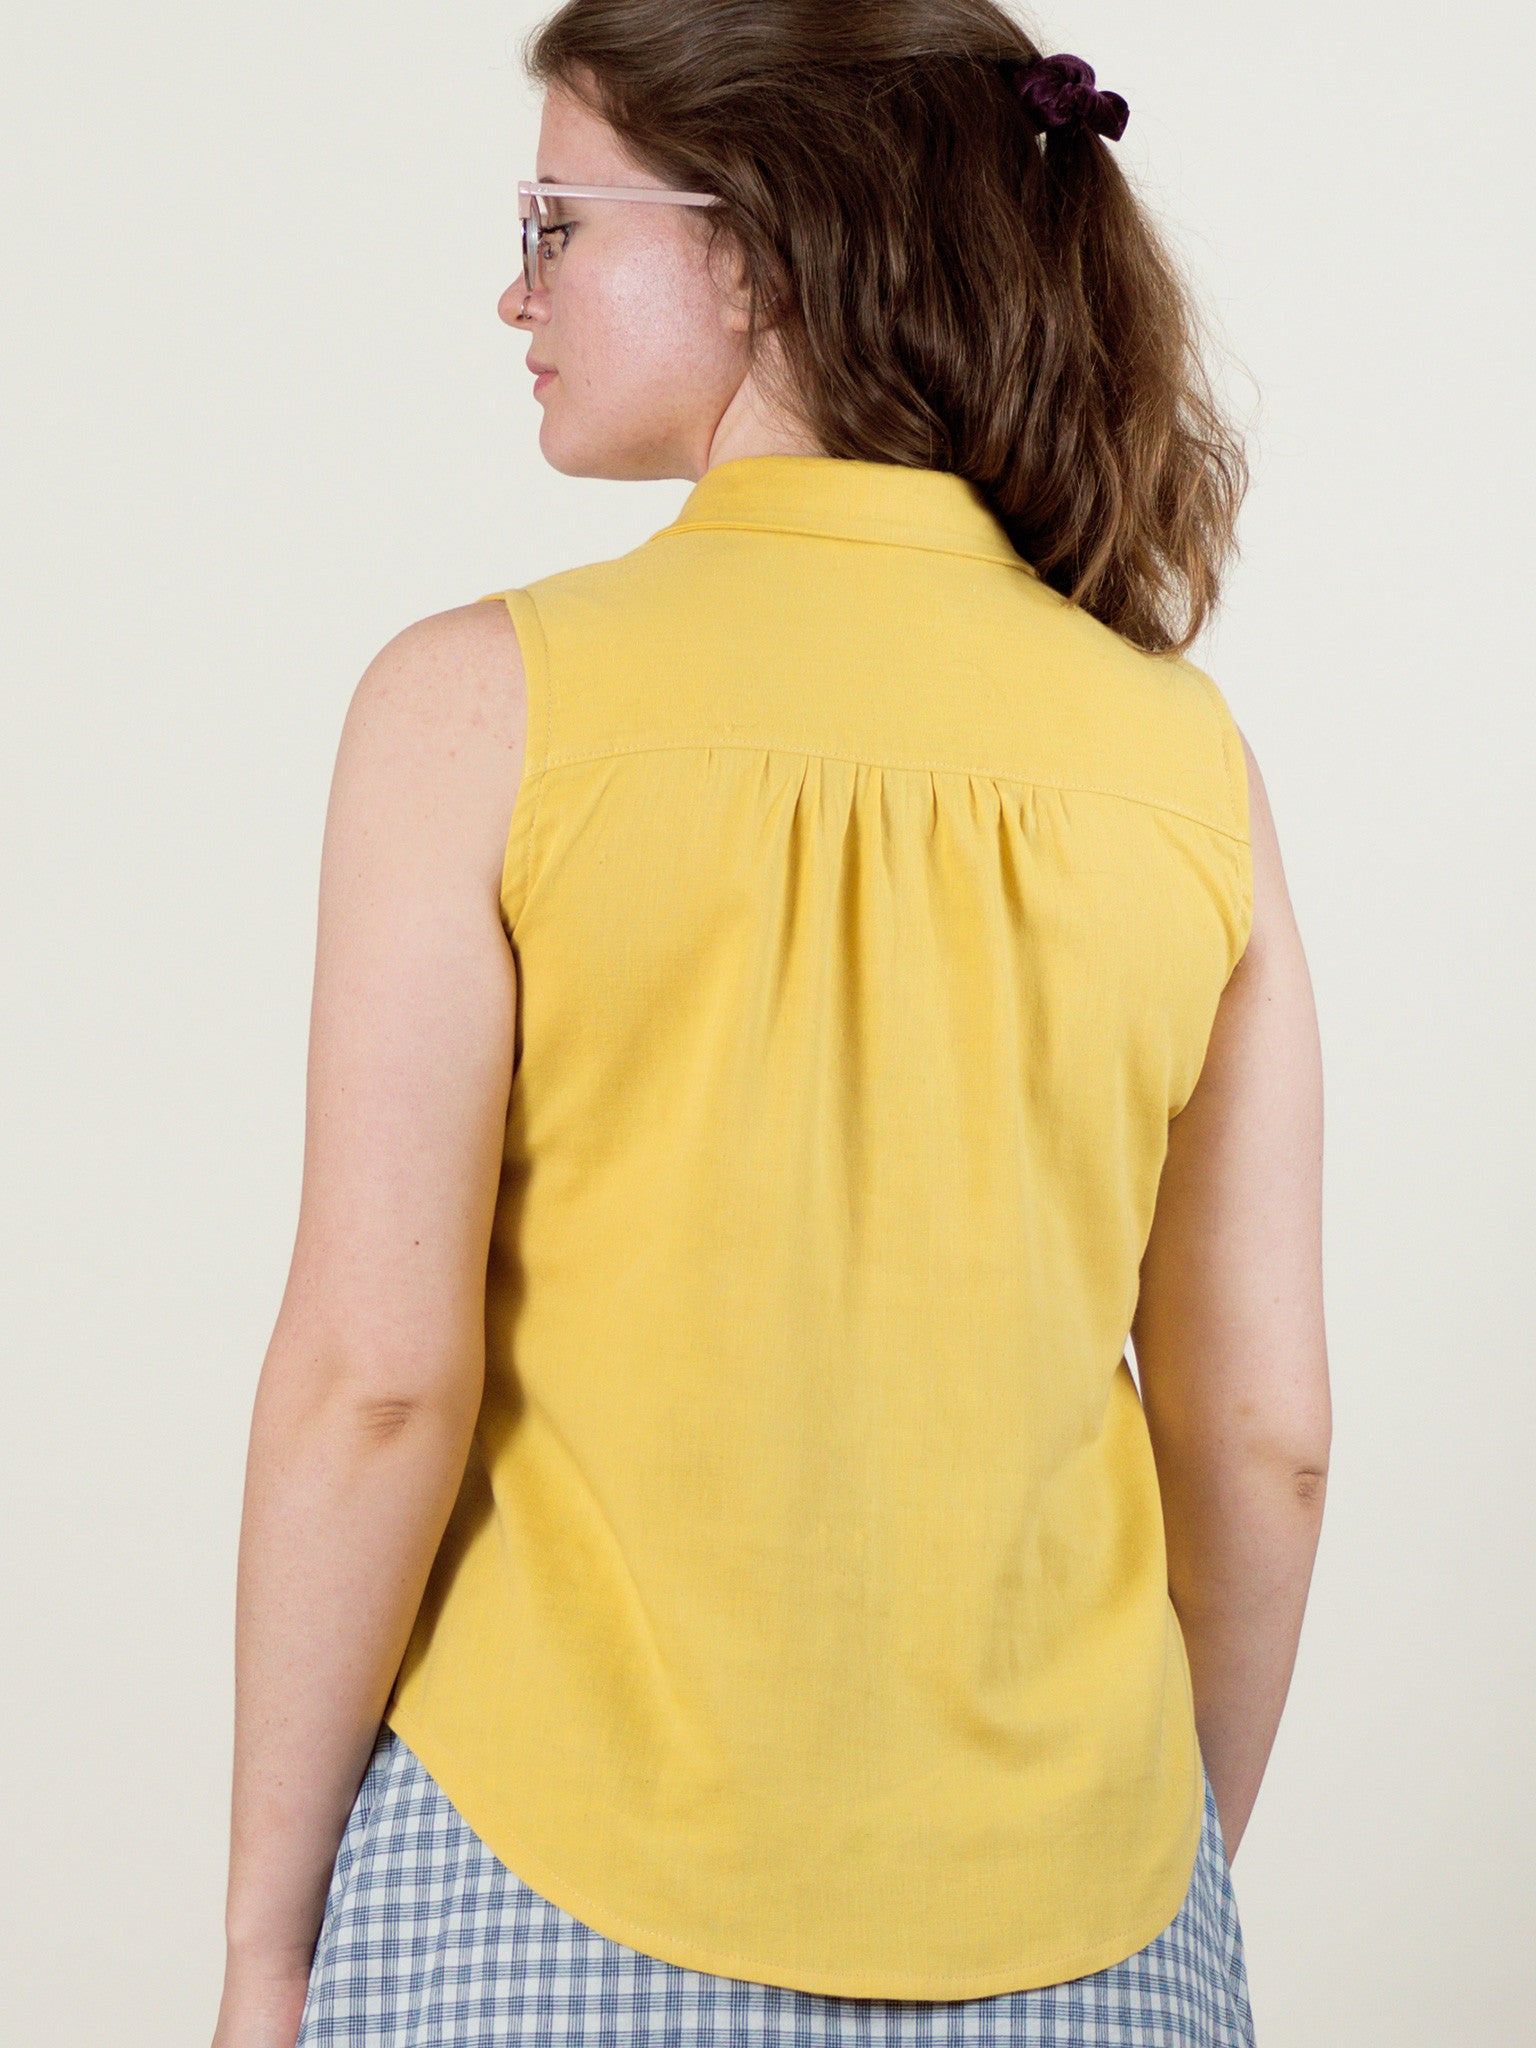 Poppy Top in Buttercup Gauze